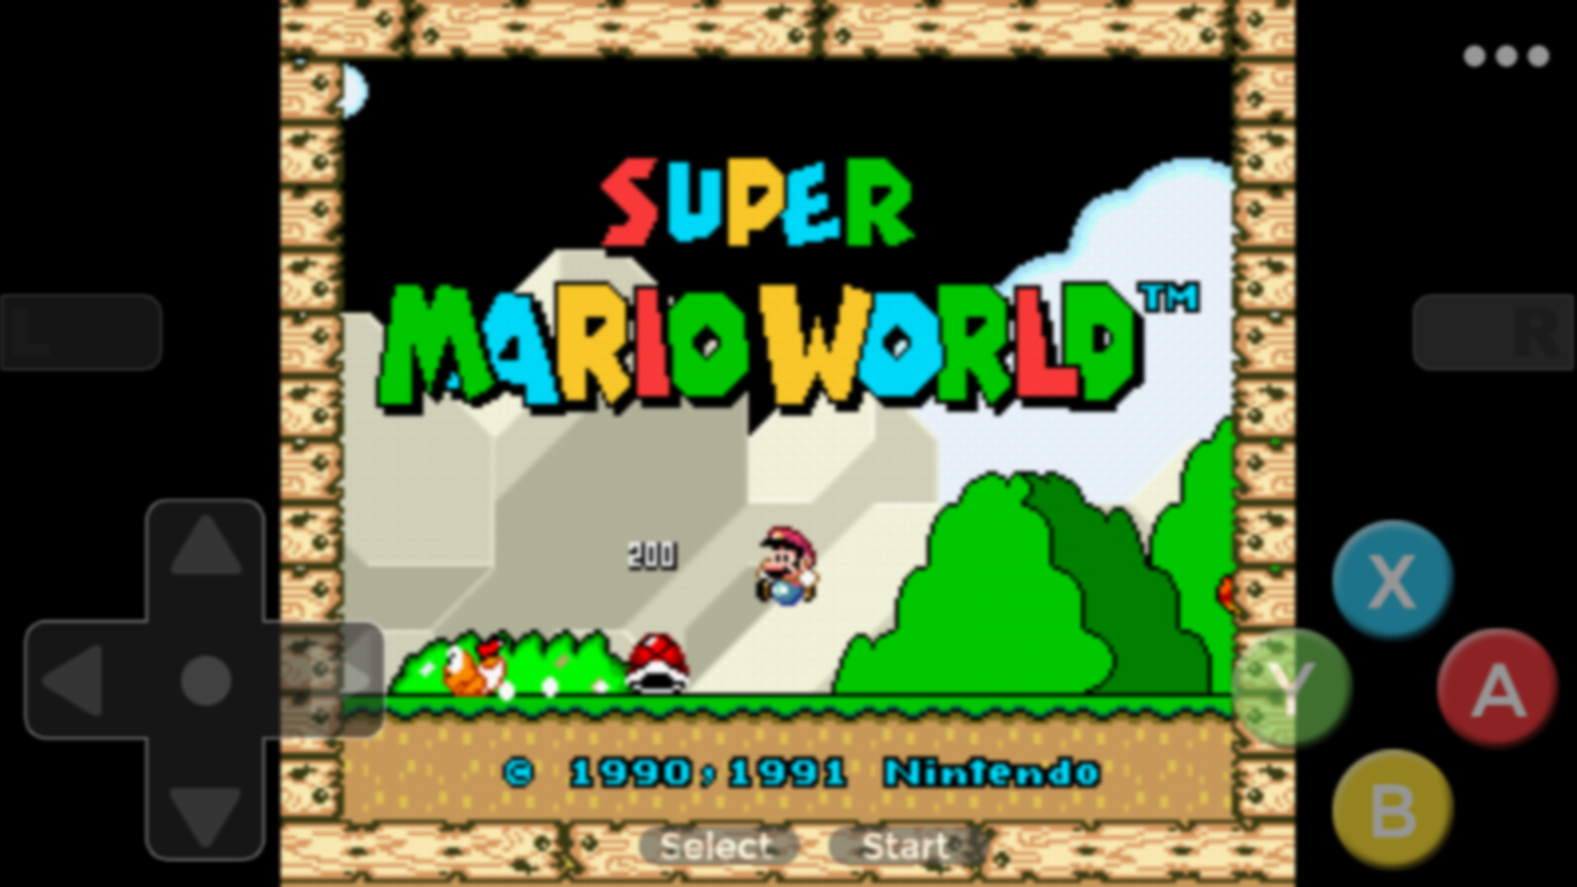 SNES Emulator - Arcade Classic Game Free 1 1a APK Download - Android